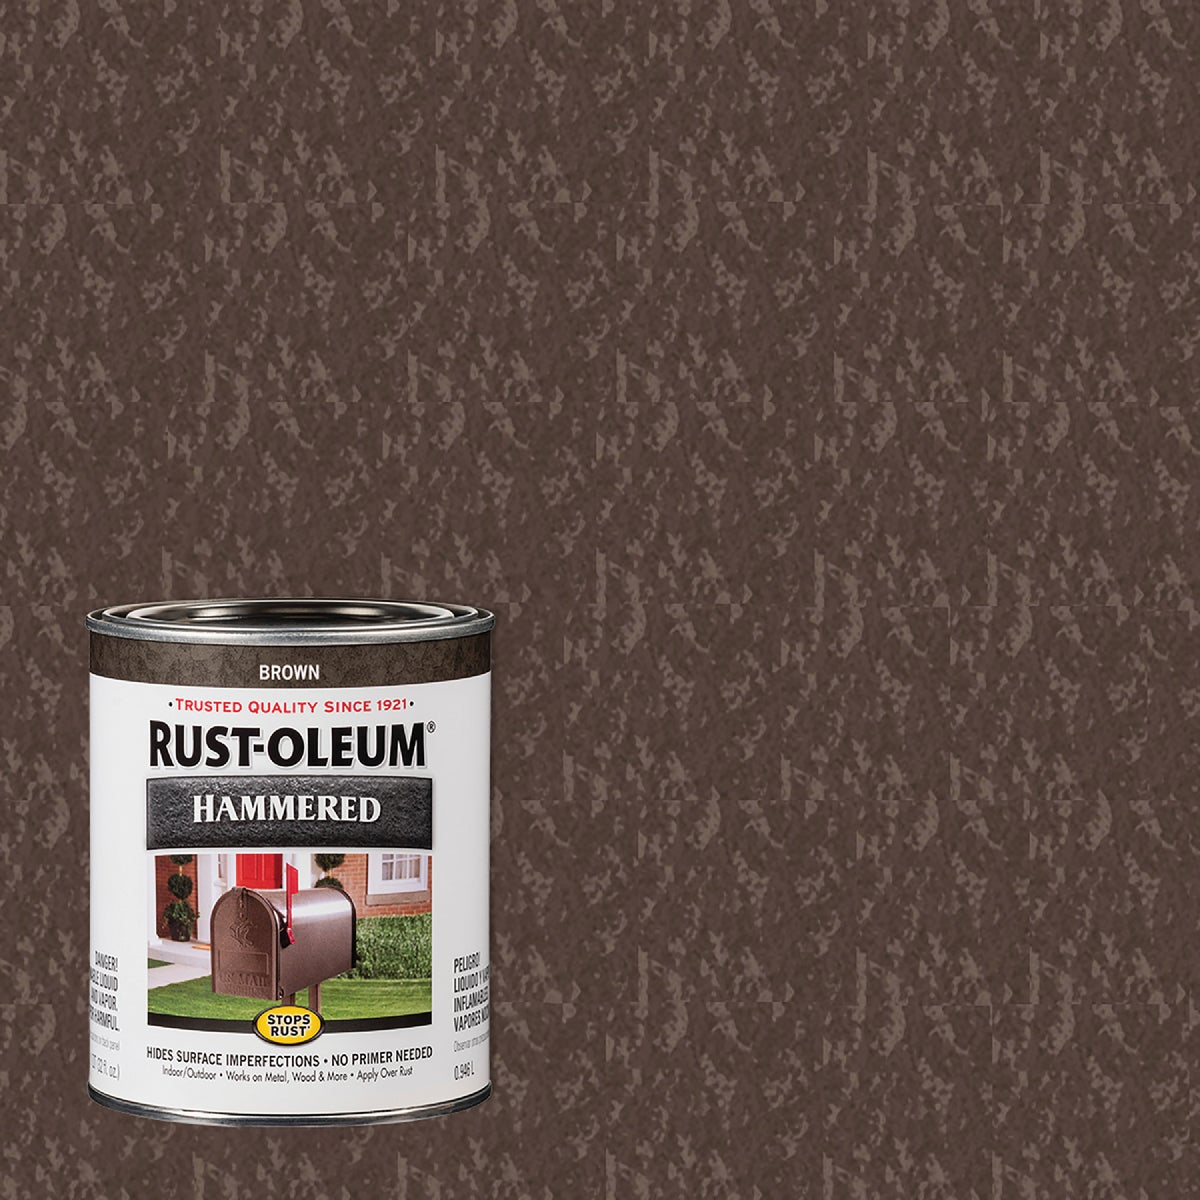 BROWN HAMMERED PAINT - 239073 by Rustoleum